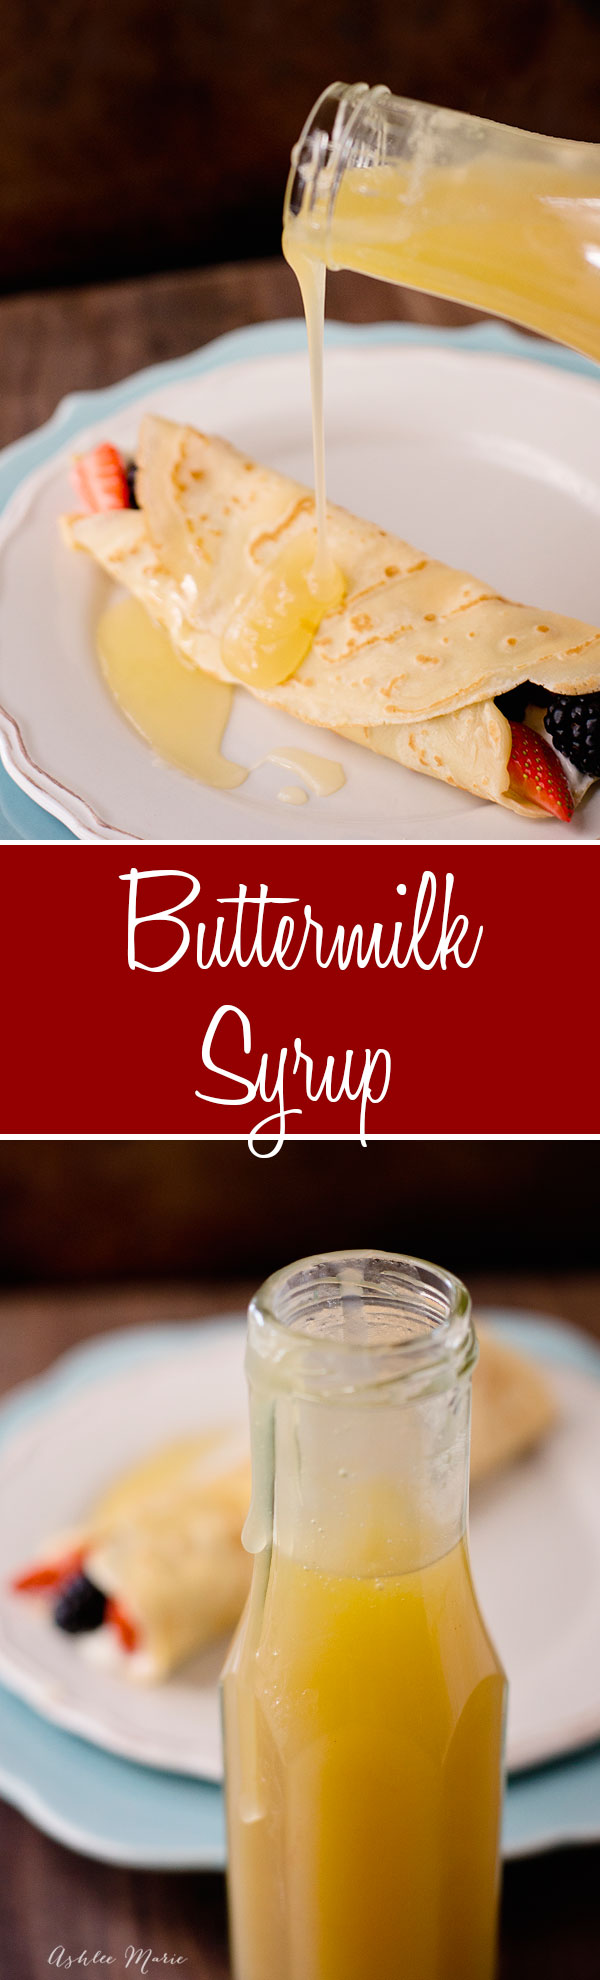 simple to make and delicious, this buttermilk syrup is always a huge hit